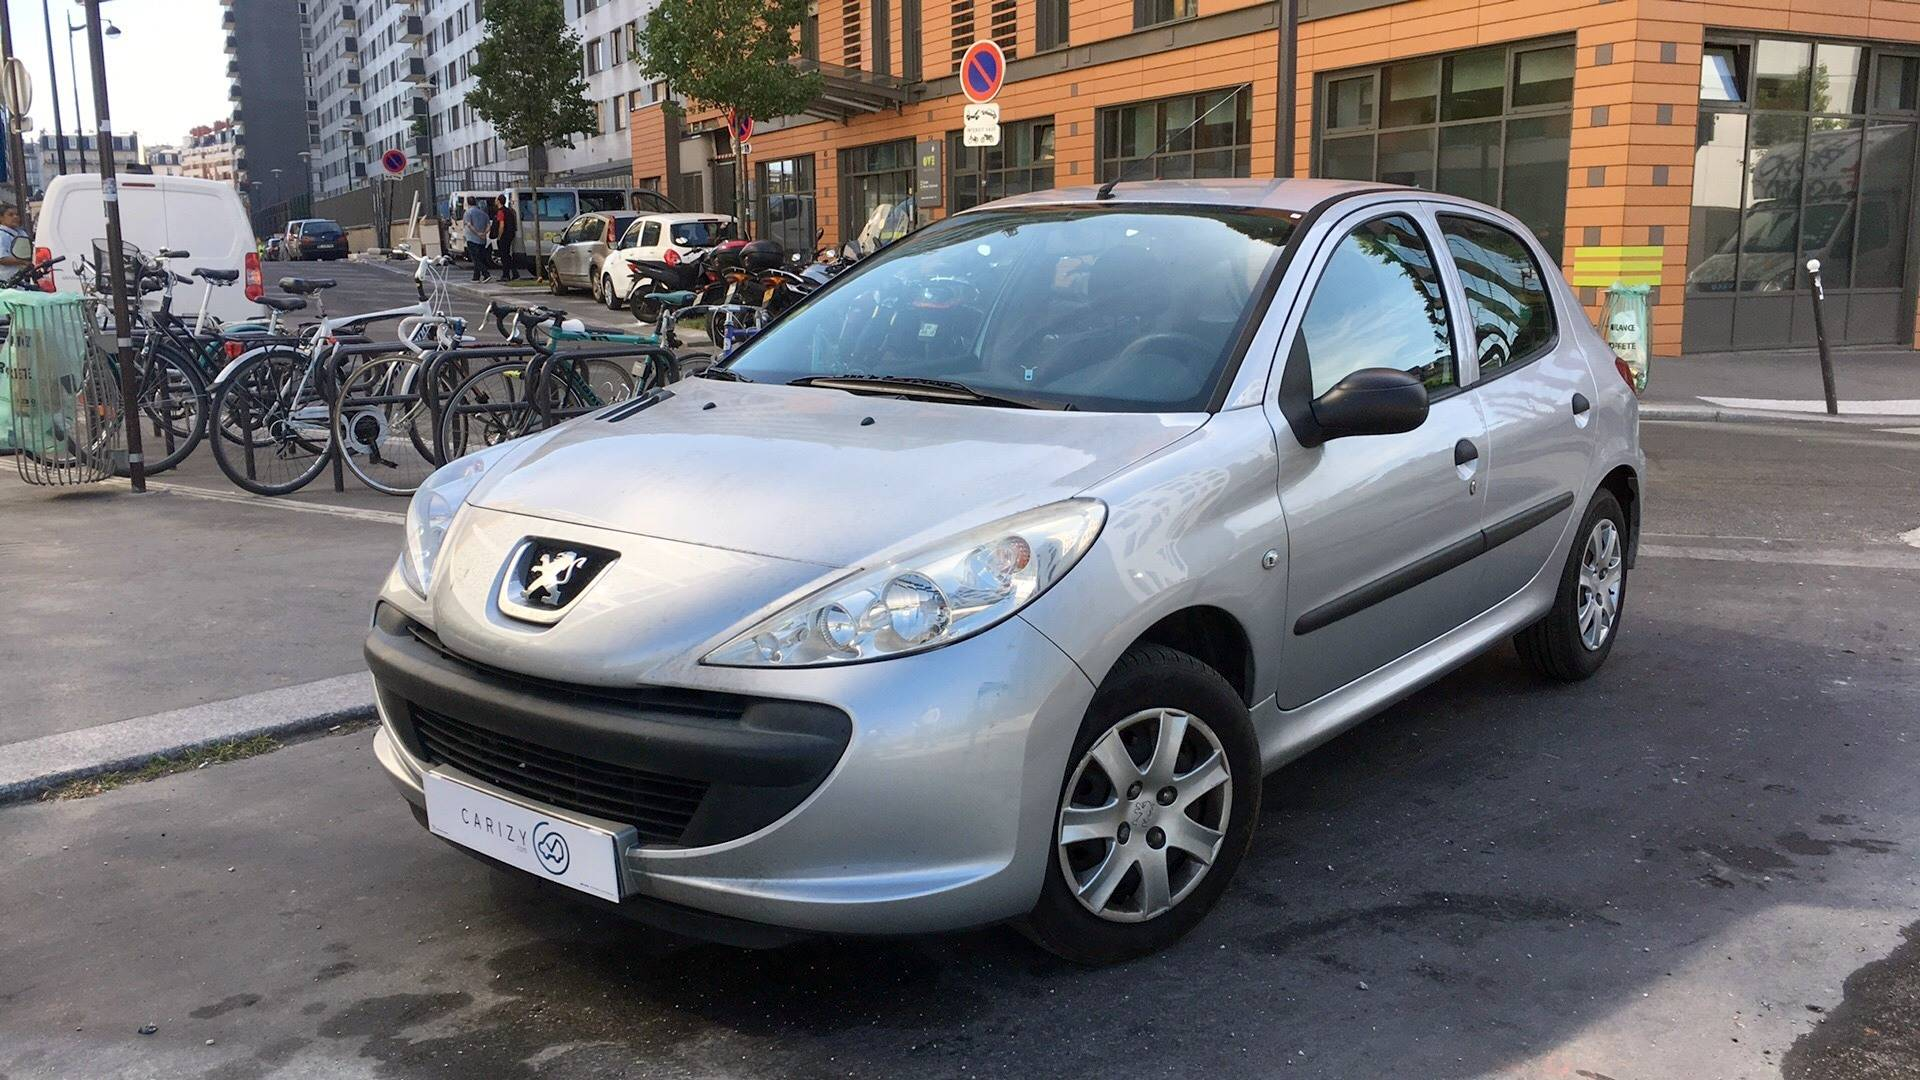 peugeot 206 plus d u0026 39 occasion 1 1 60 urban paris